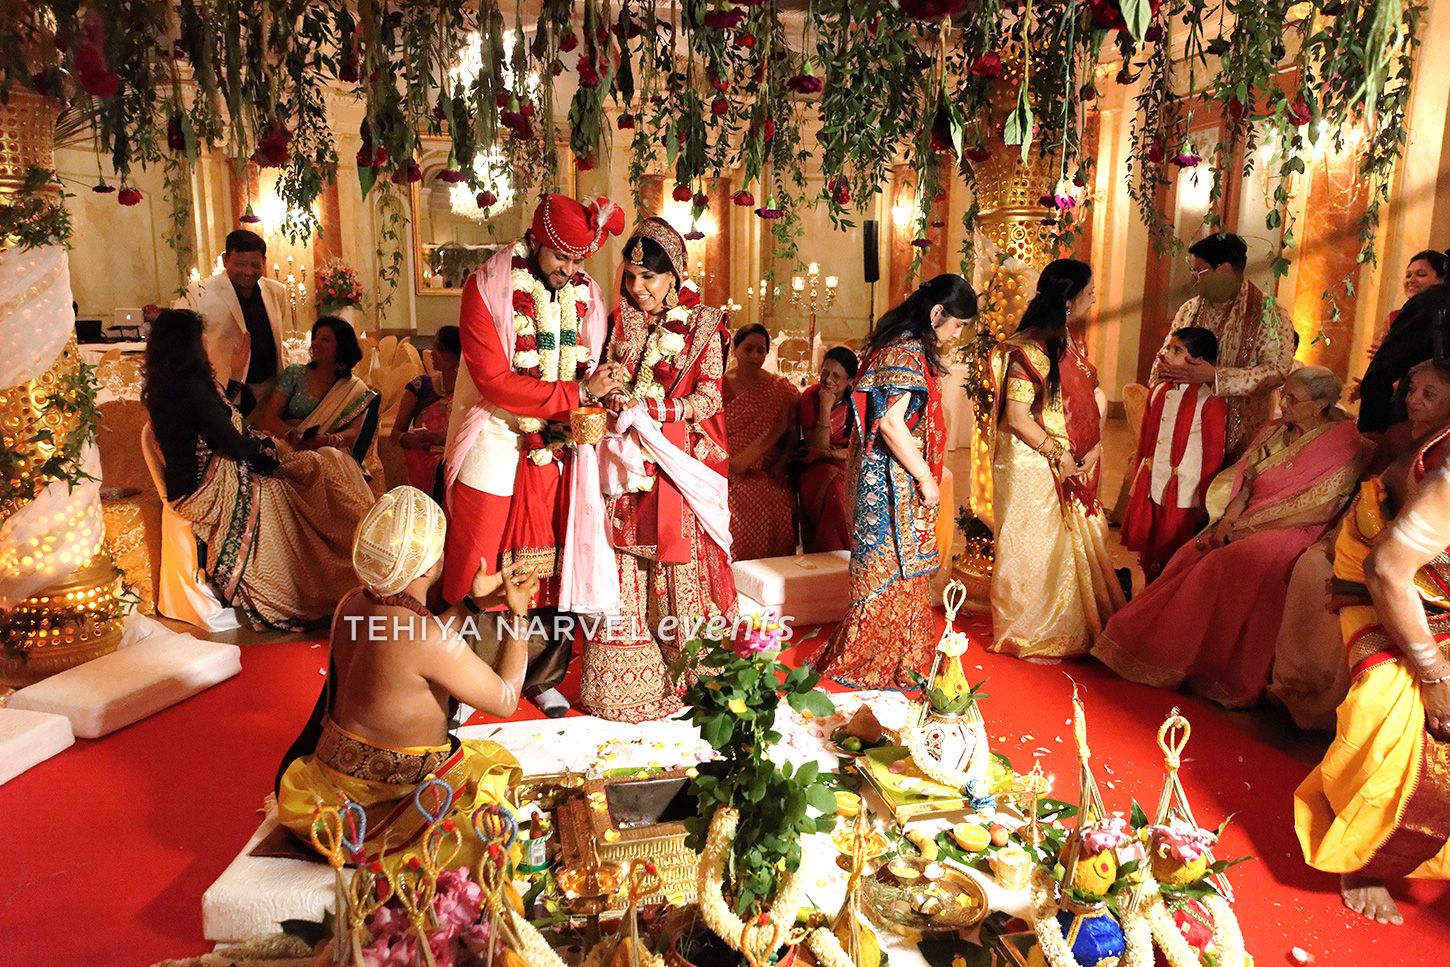 Switzerland Weddings - Tehiya Narvel Events - beautiful Indian Wedding planning and management